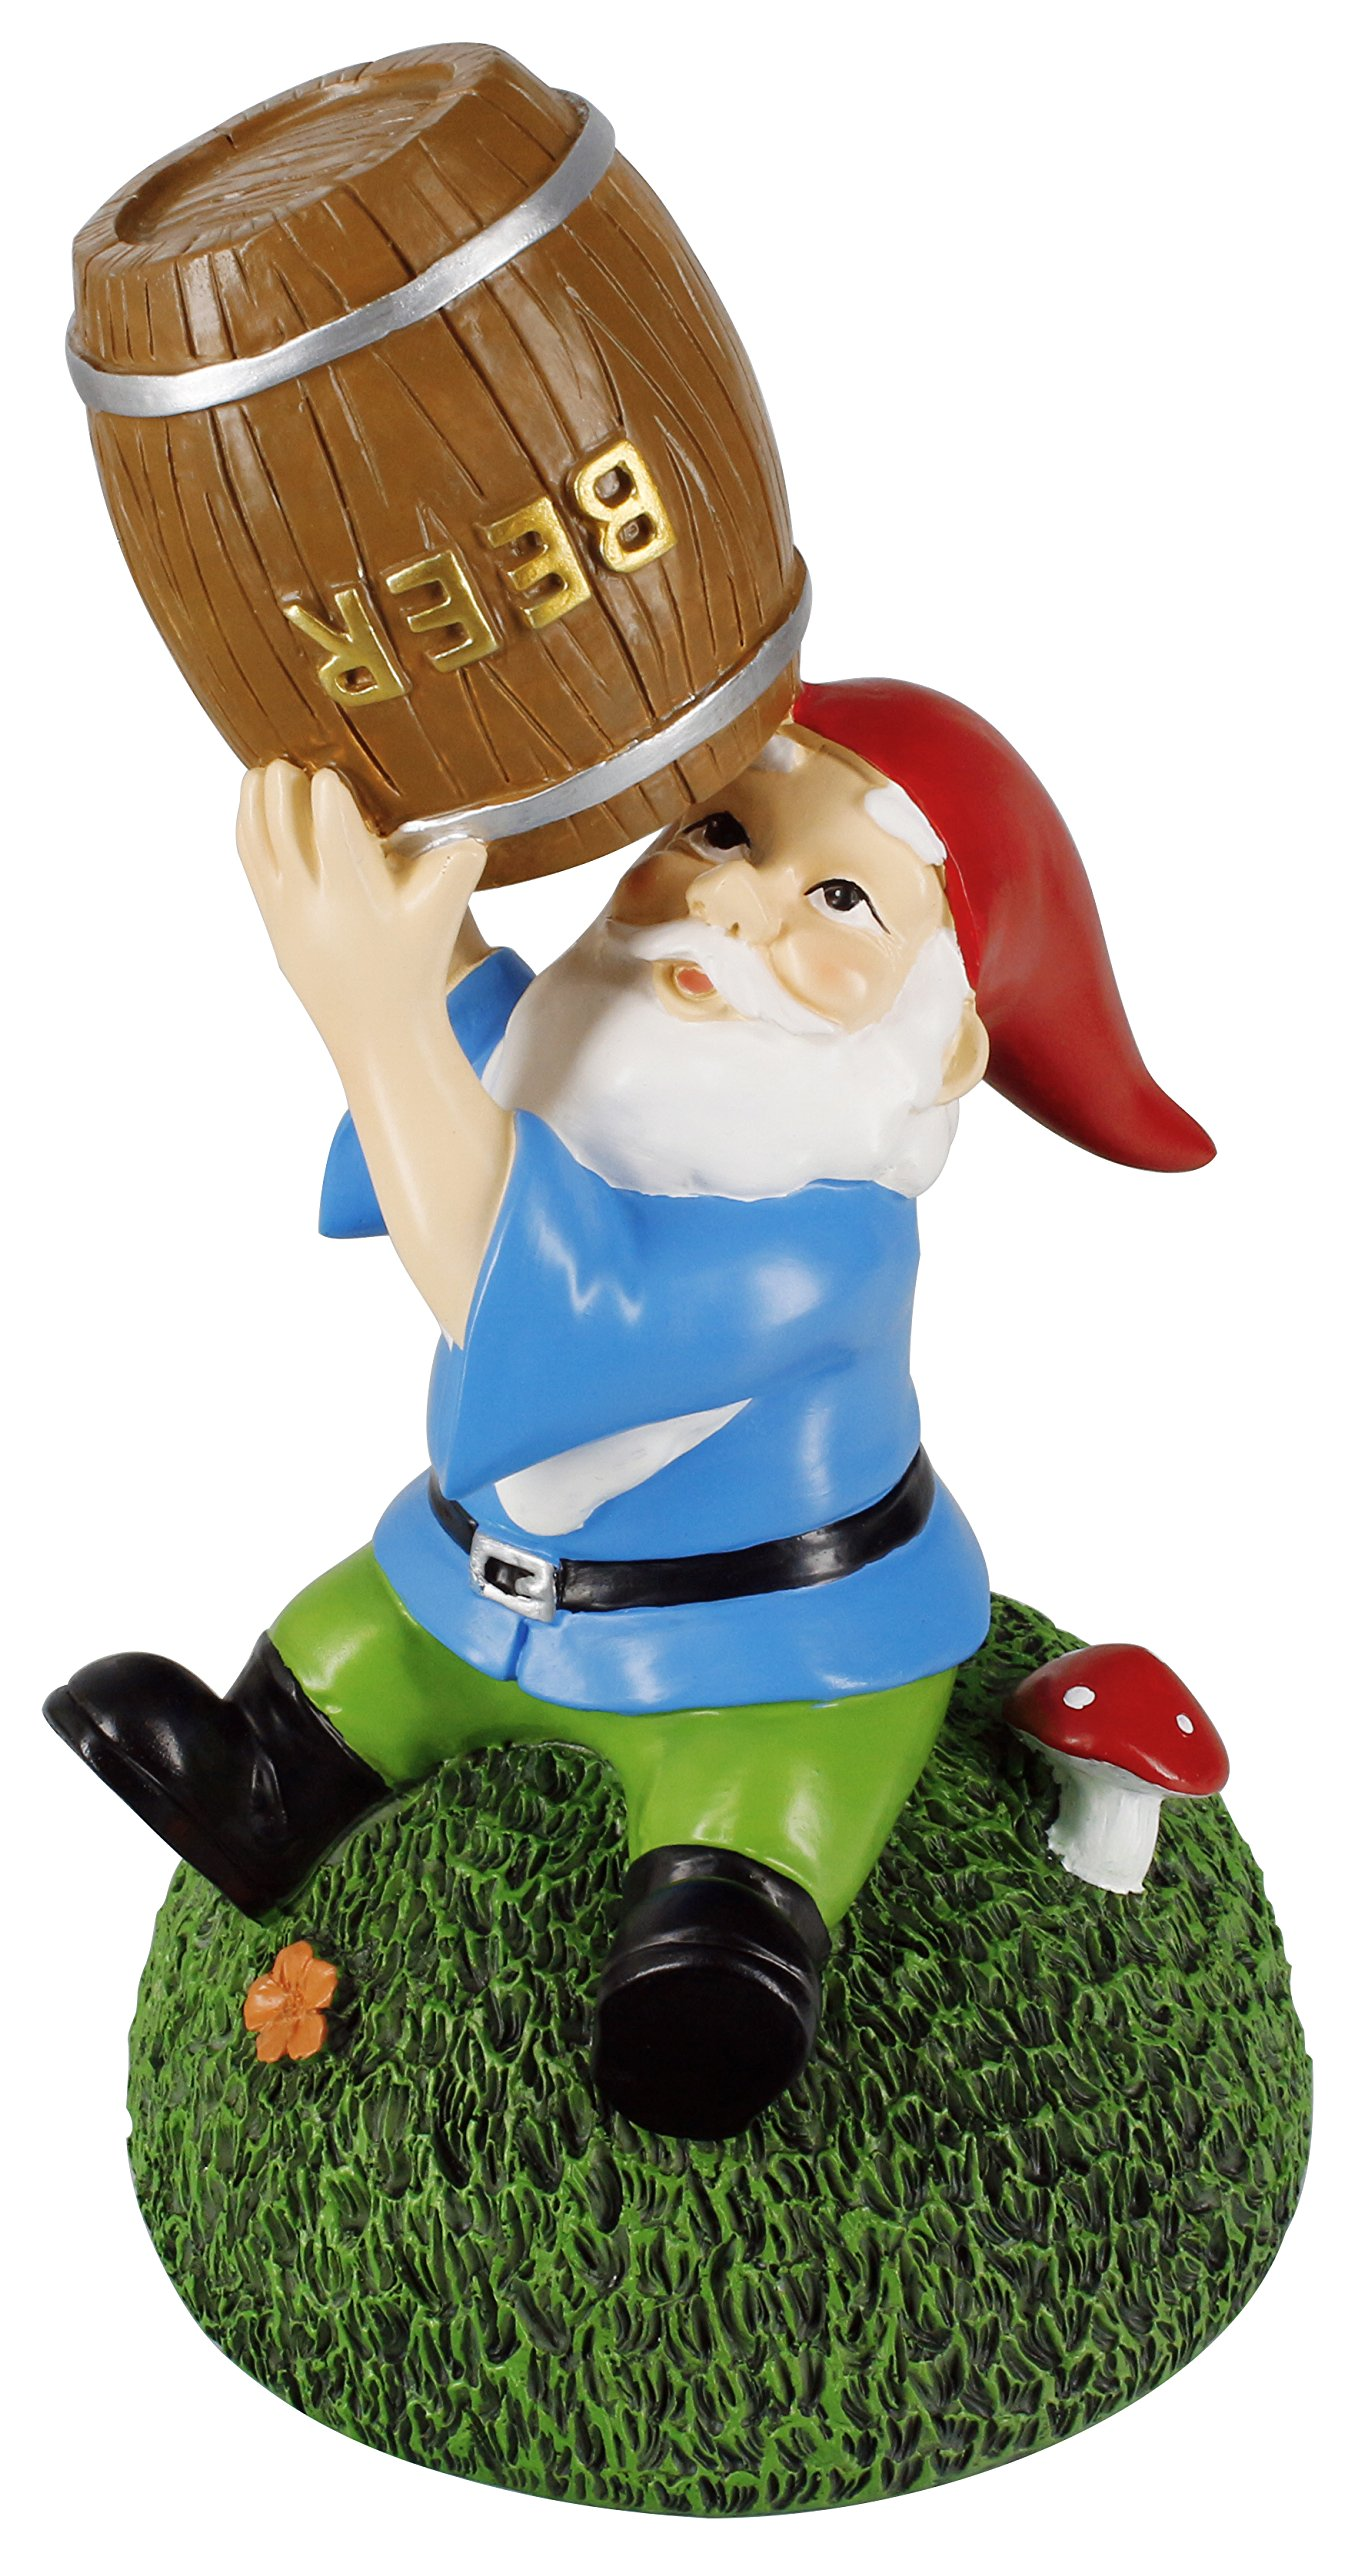 Funny Gnomes: 25 Funny Garden Gnomes For Your Yard